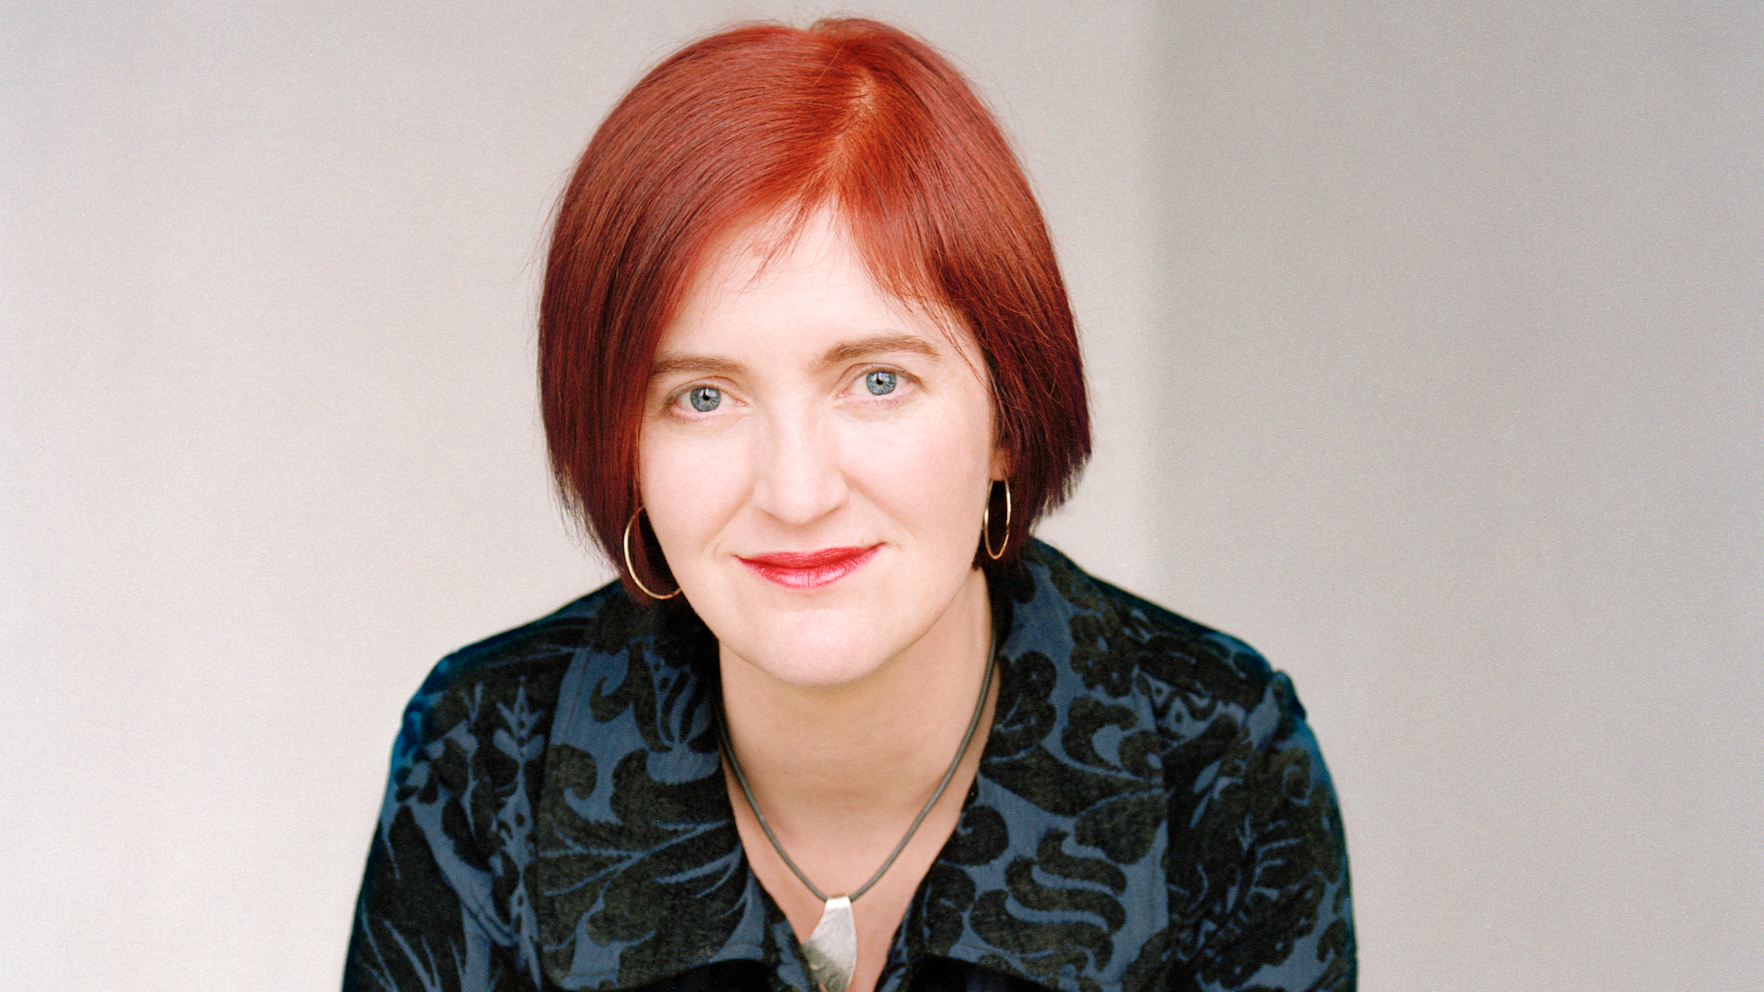 Essays on room by emma donoghue